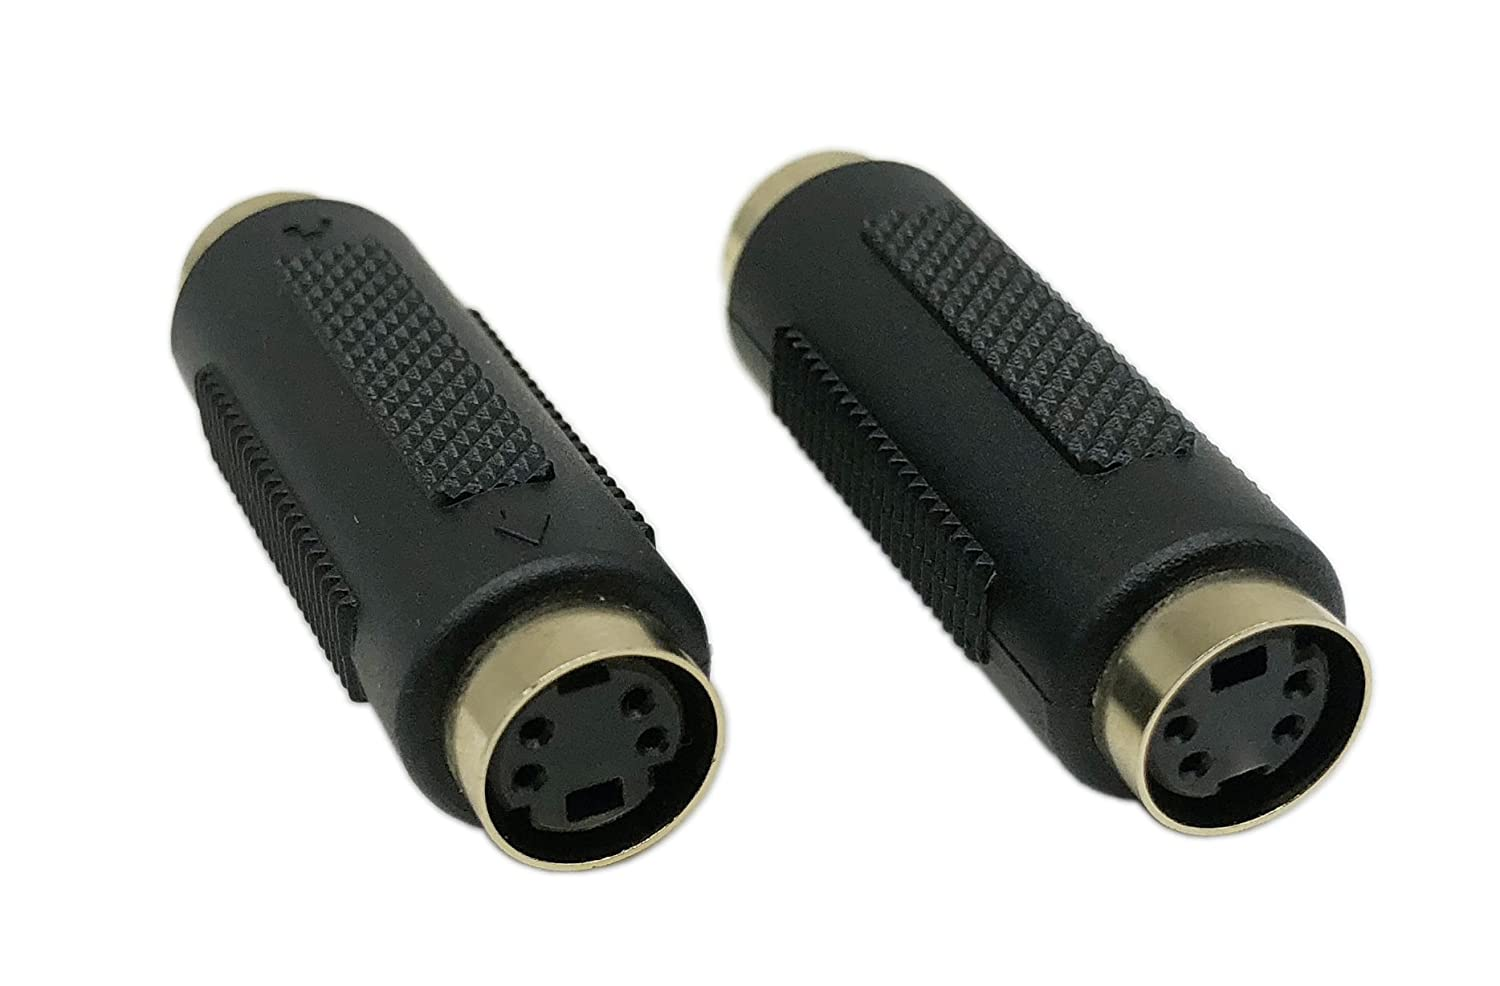 CERRXIAN S-Video Mini Din 4 PIN Female to RCA Composite Male Connector Adapter(sf-rm, 2-Pack) Lemeng